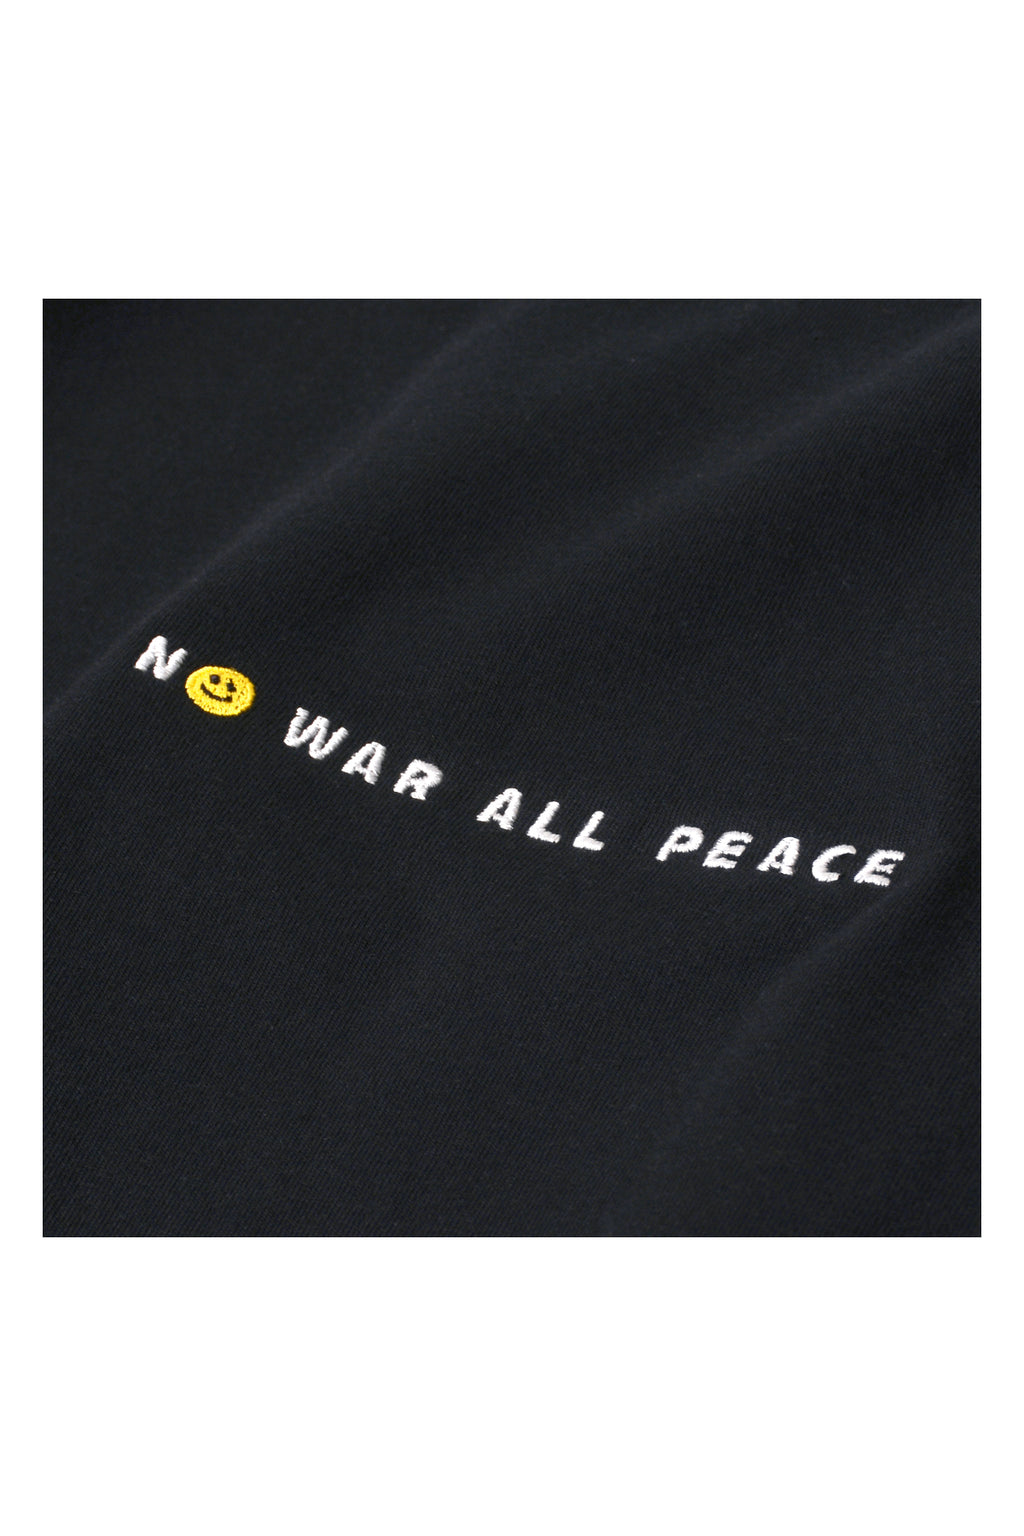 'NO WAR ALL PEACE' EMBROIDERED TEE | BLACK - 778